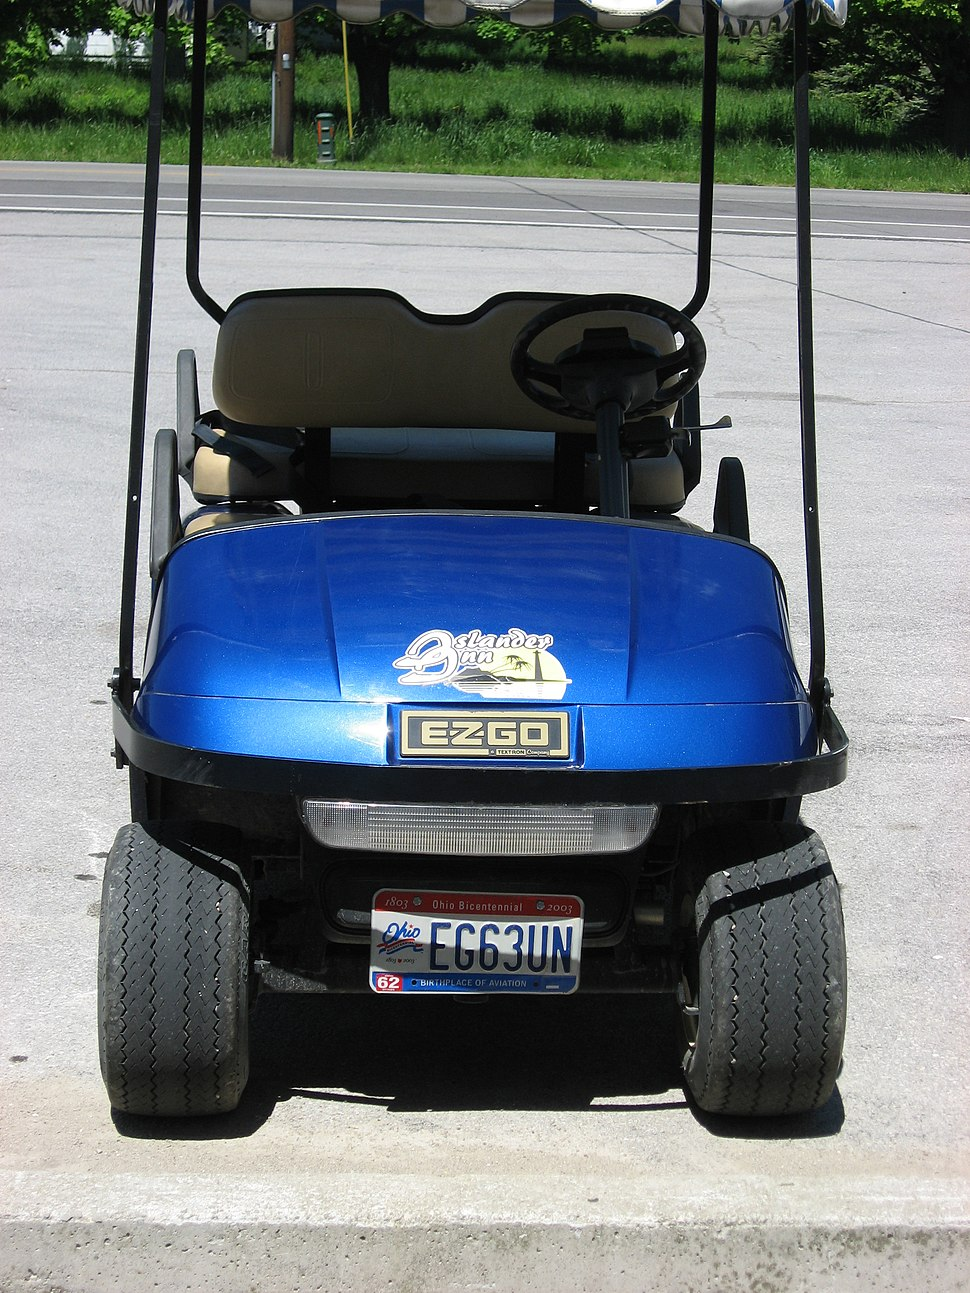 Golf cart with license plate